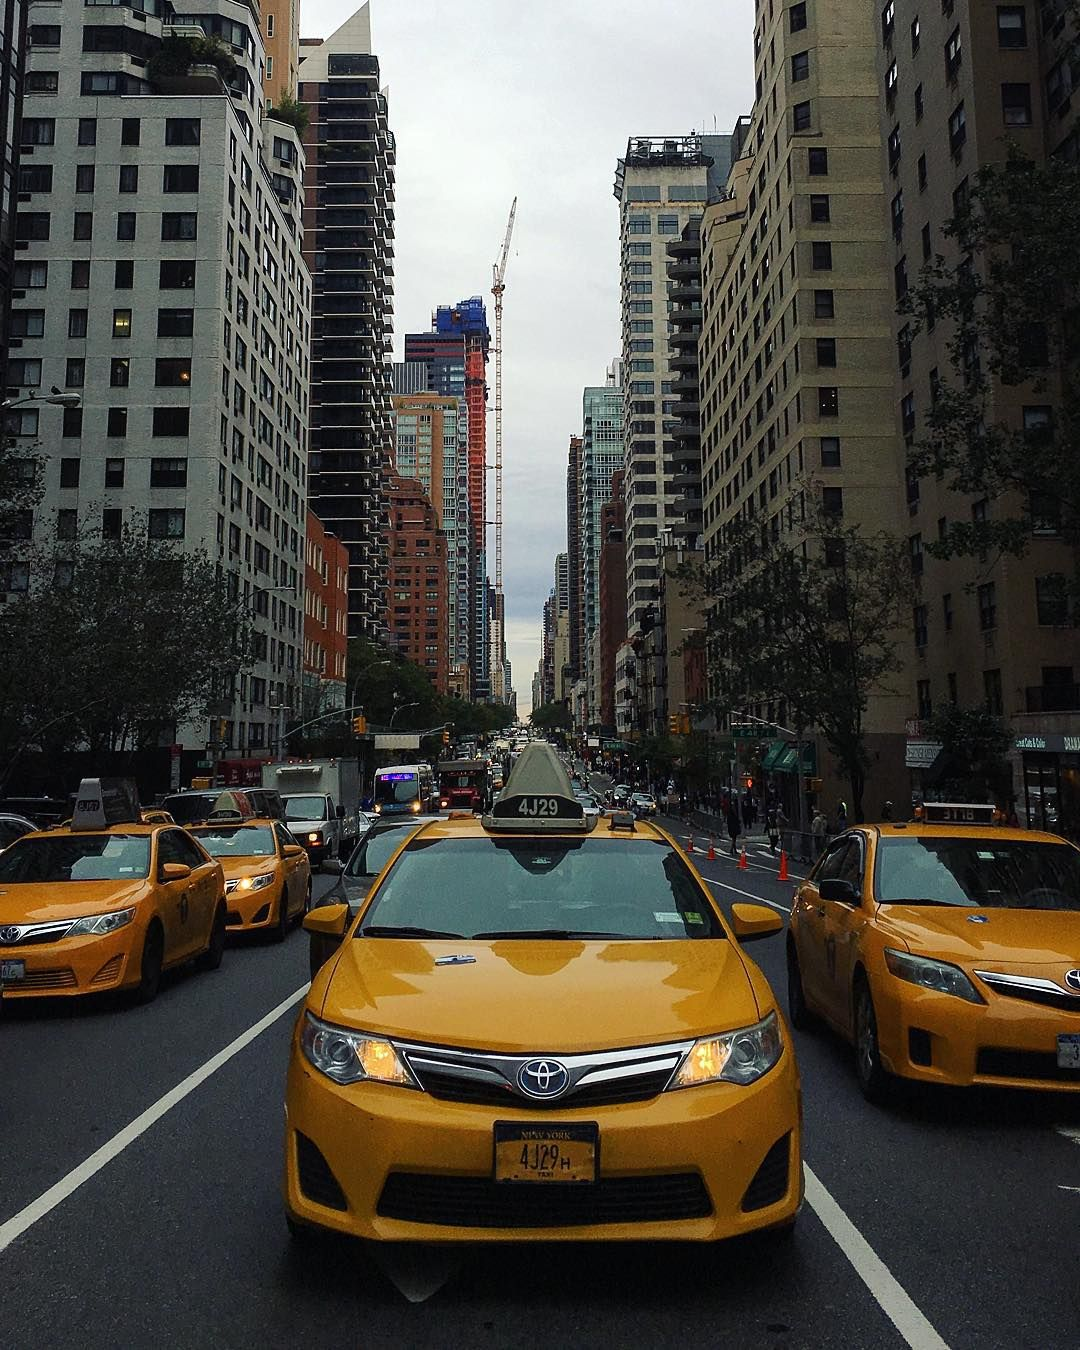 City Streets: Looking up 2nd Avenue by nyc